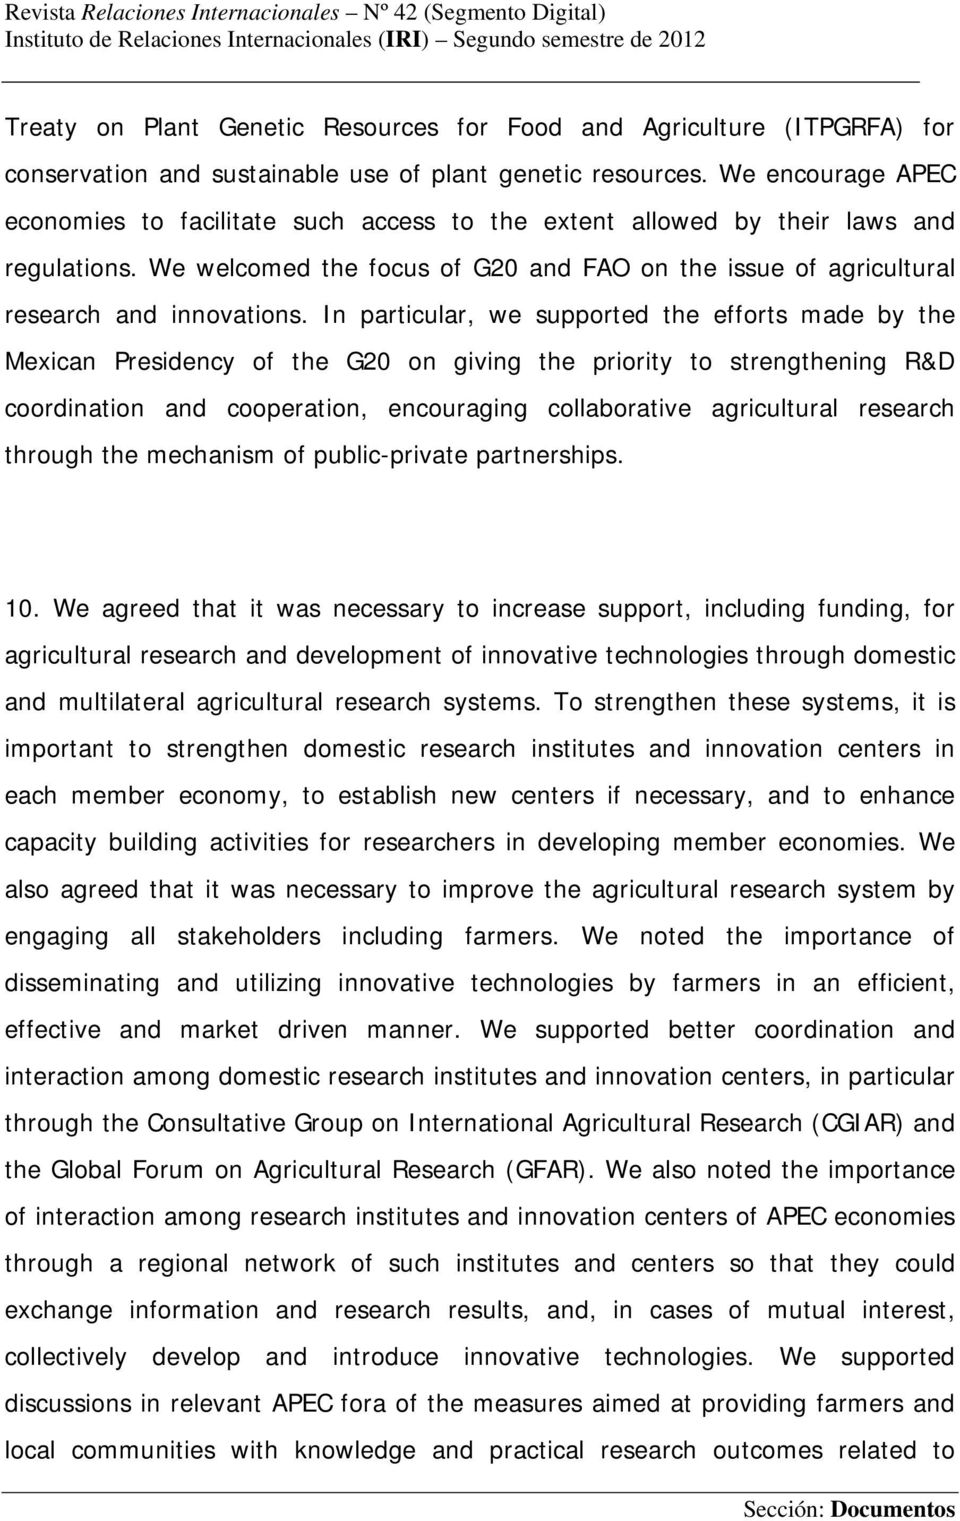 In particular, we supported the efforts made by the Mexican Presidency of the G20 on giving the priority to strengthening R&D coordination and cooperation, encouraging collaborative agricultural